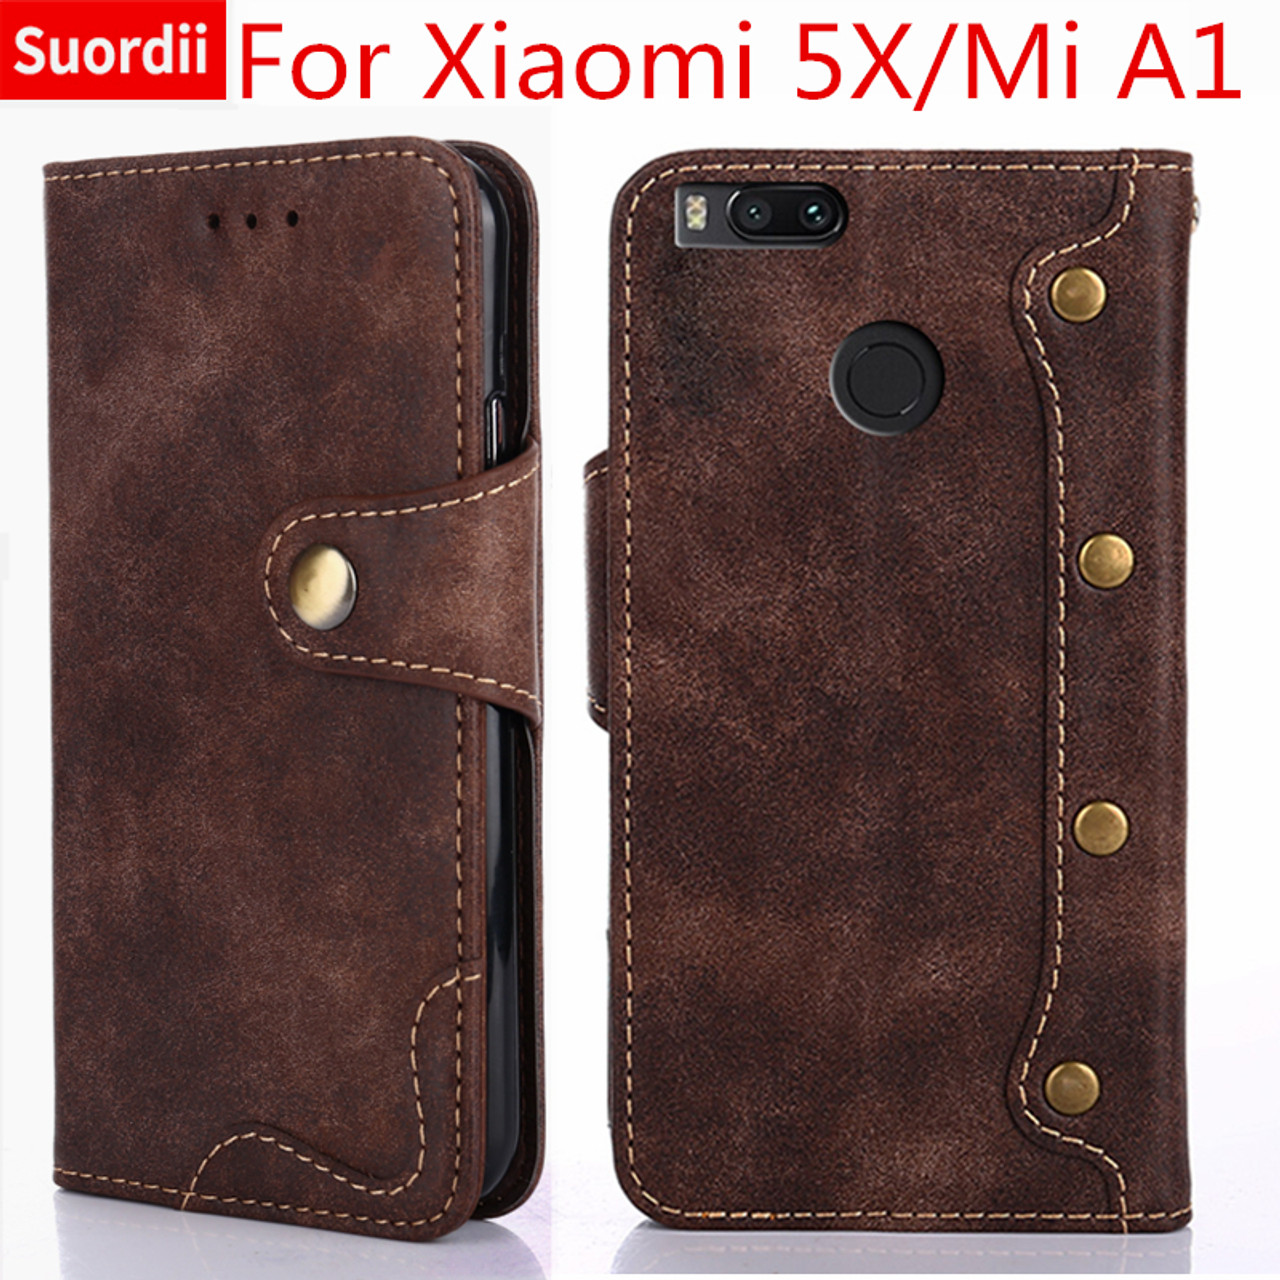 newest a0514 980d1 Luxury Case For Xiaomi Mi 5X Mi A1 Book Style Flip Leather Wallet Case For  Xiaomi A1/5X Stand Card Holder Covers